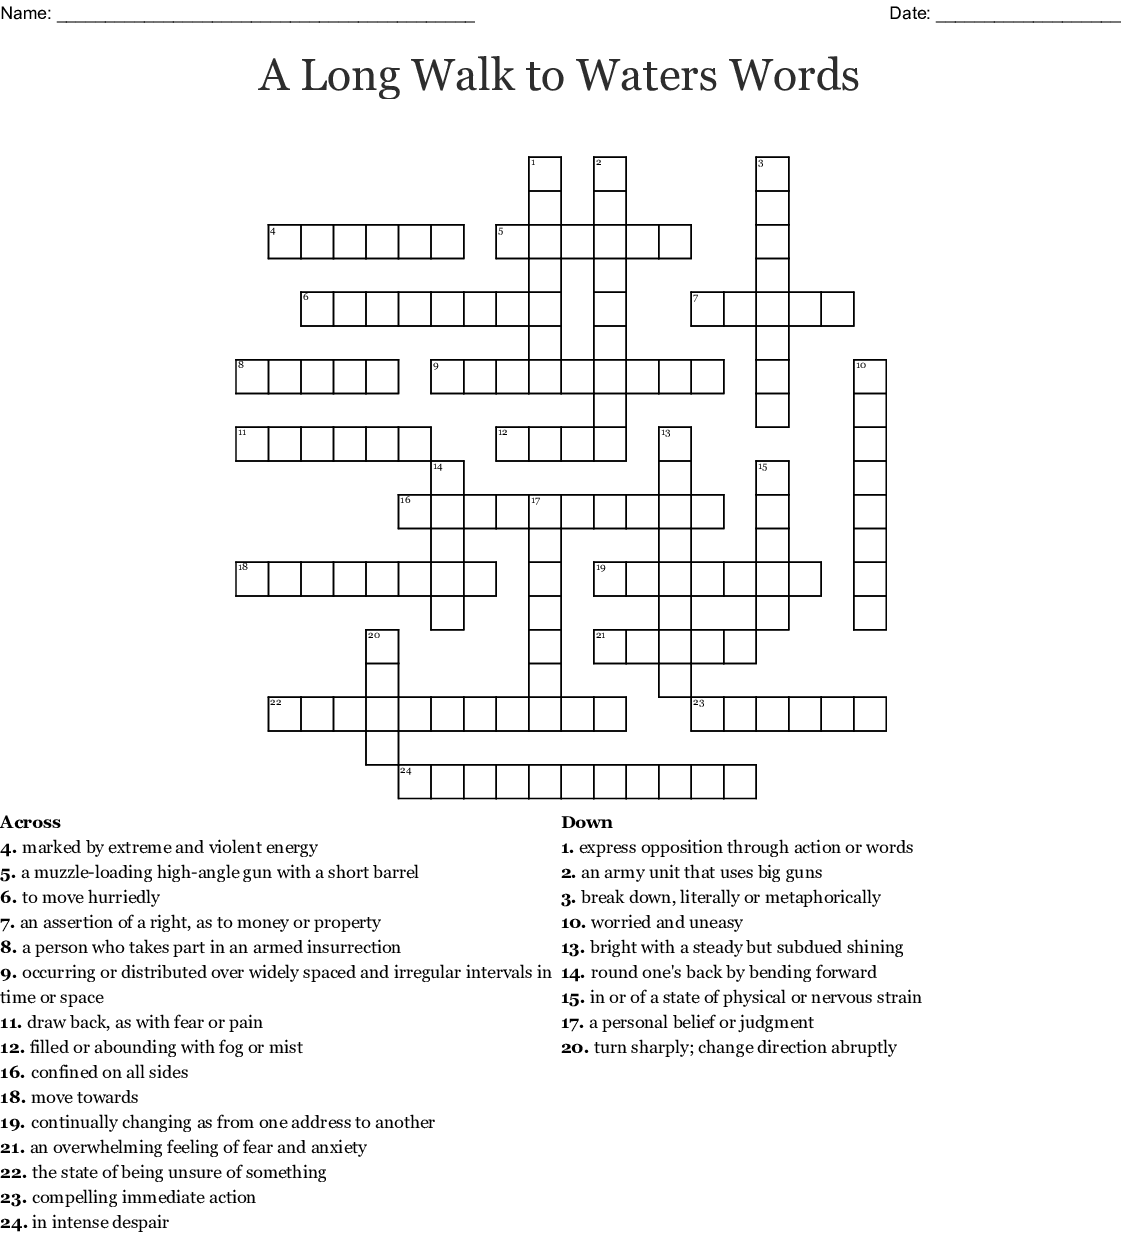 A Long Walk To Water Ch 1 3 Vocabulary Crossword Wordmint